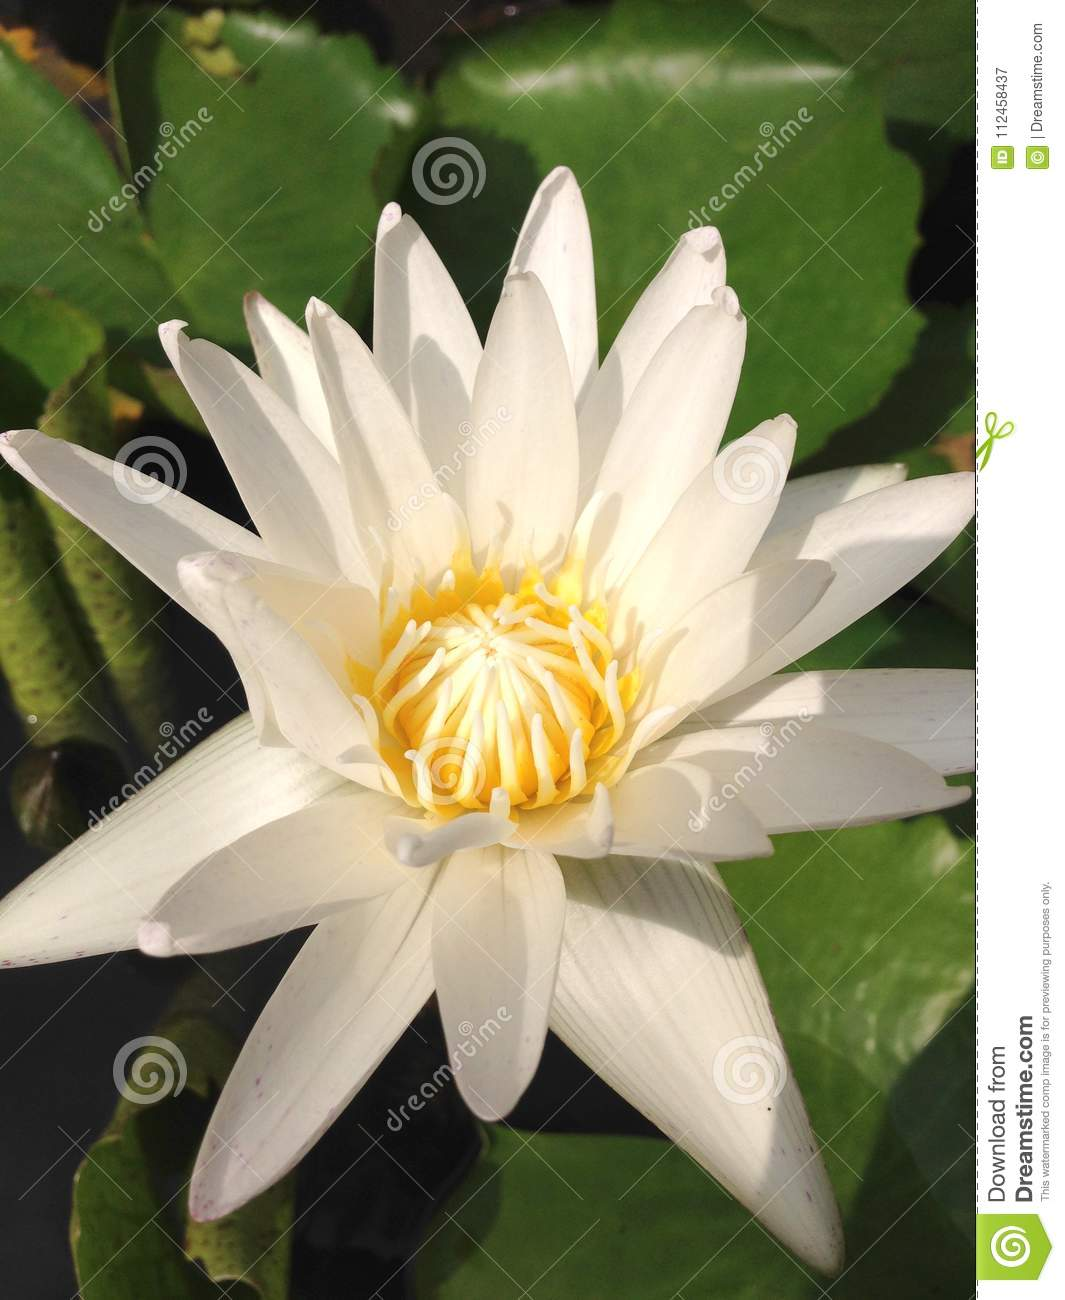 Close up top view white lotus flower is blooming and outstanding royalty free stock photo download close up top view white lotus flower izmirmasajfo